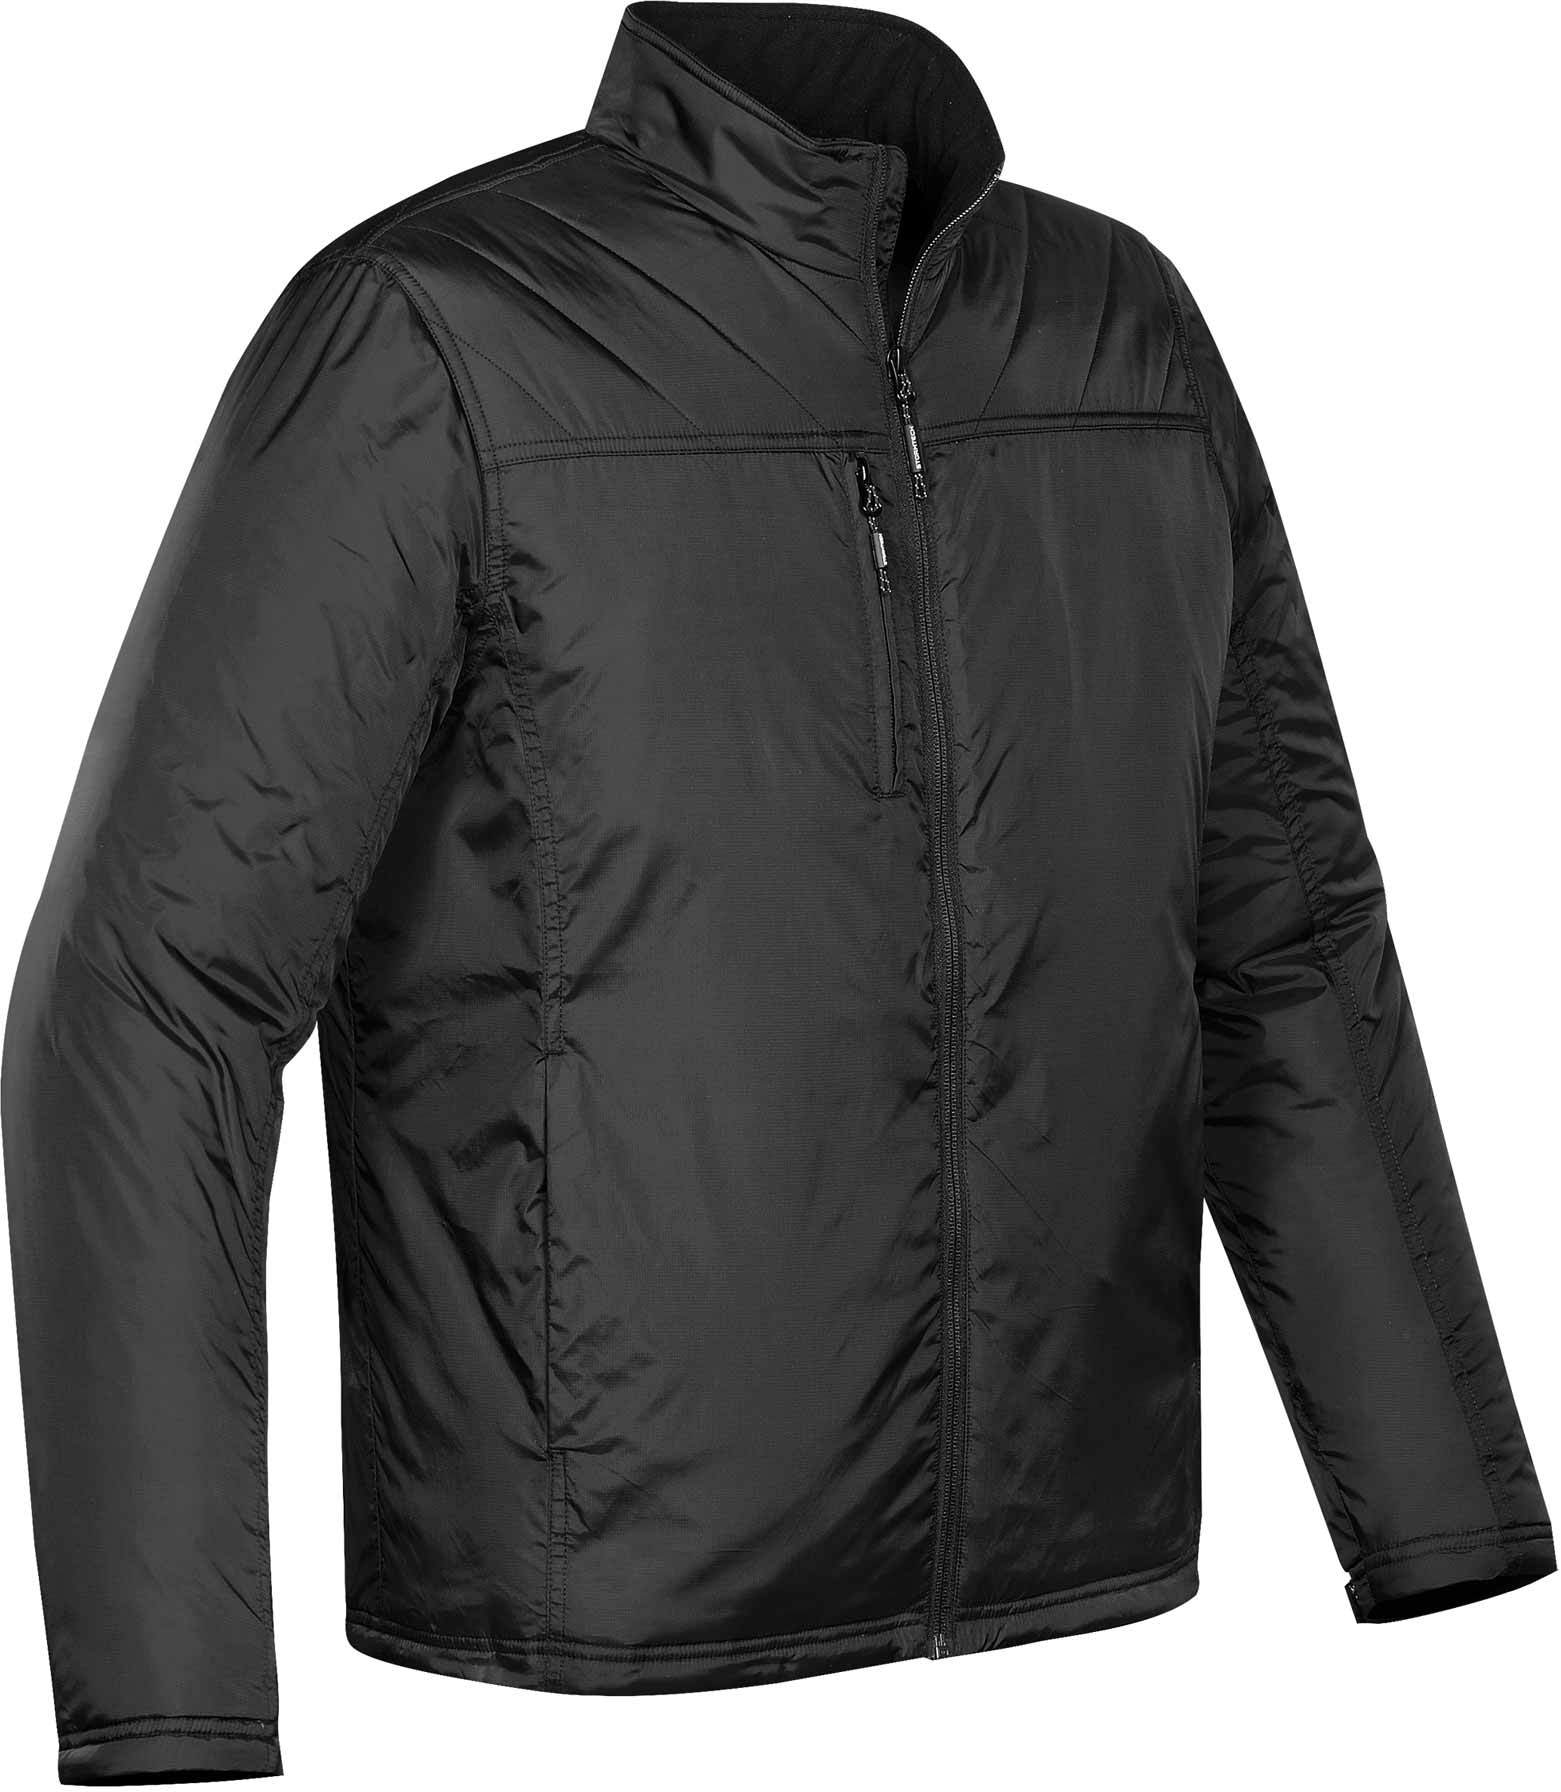 Clearance Men's Summit Thermal Jacket NL 1